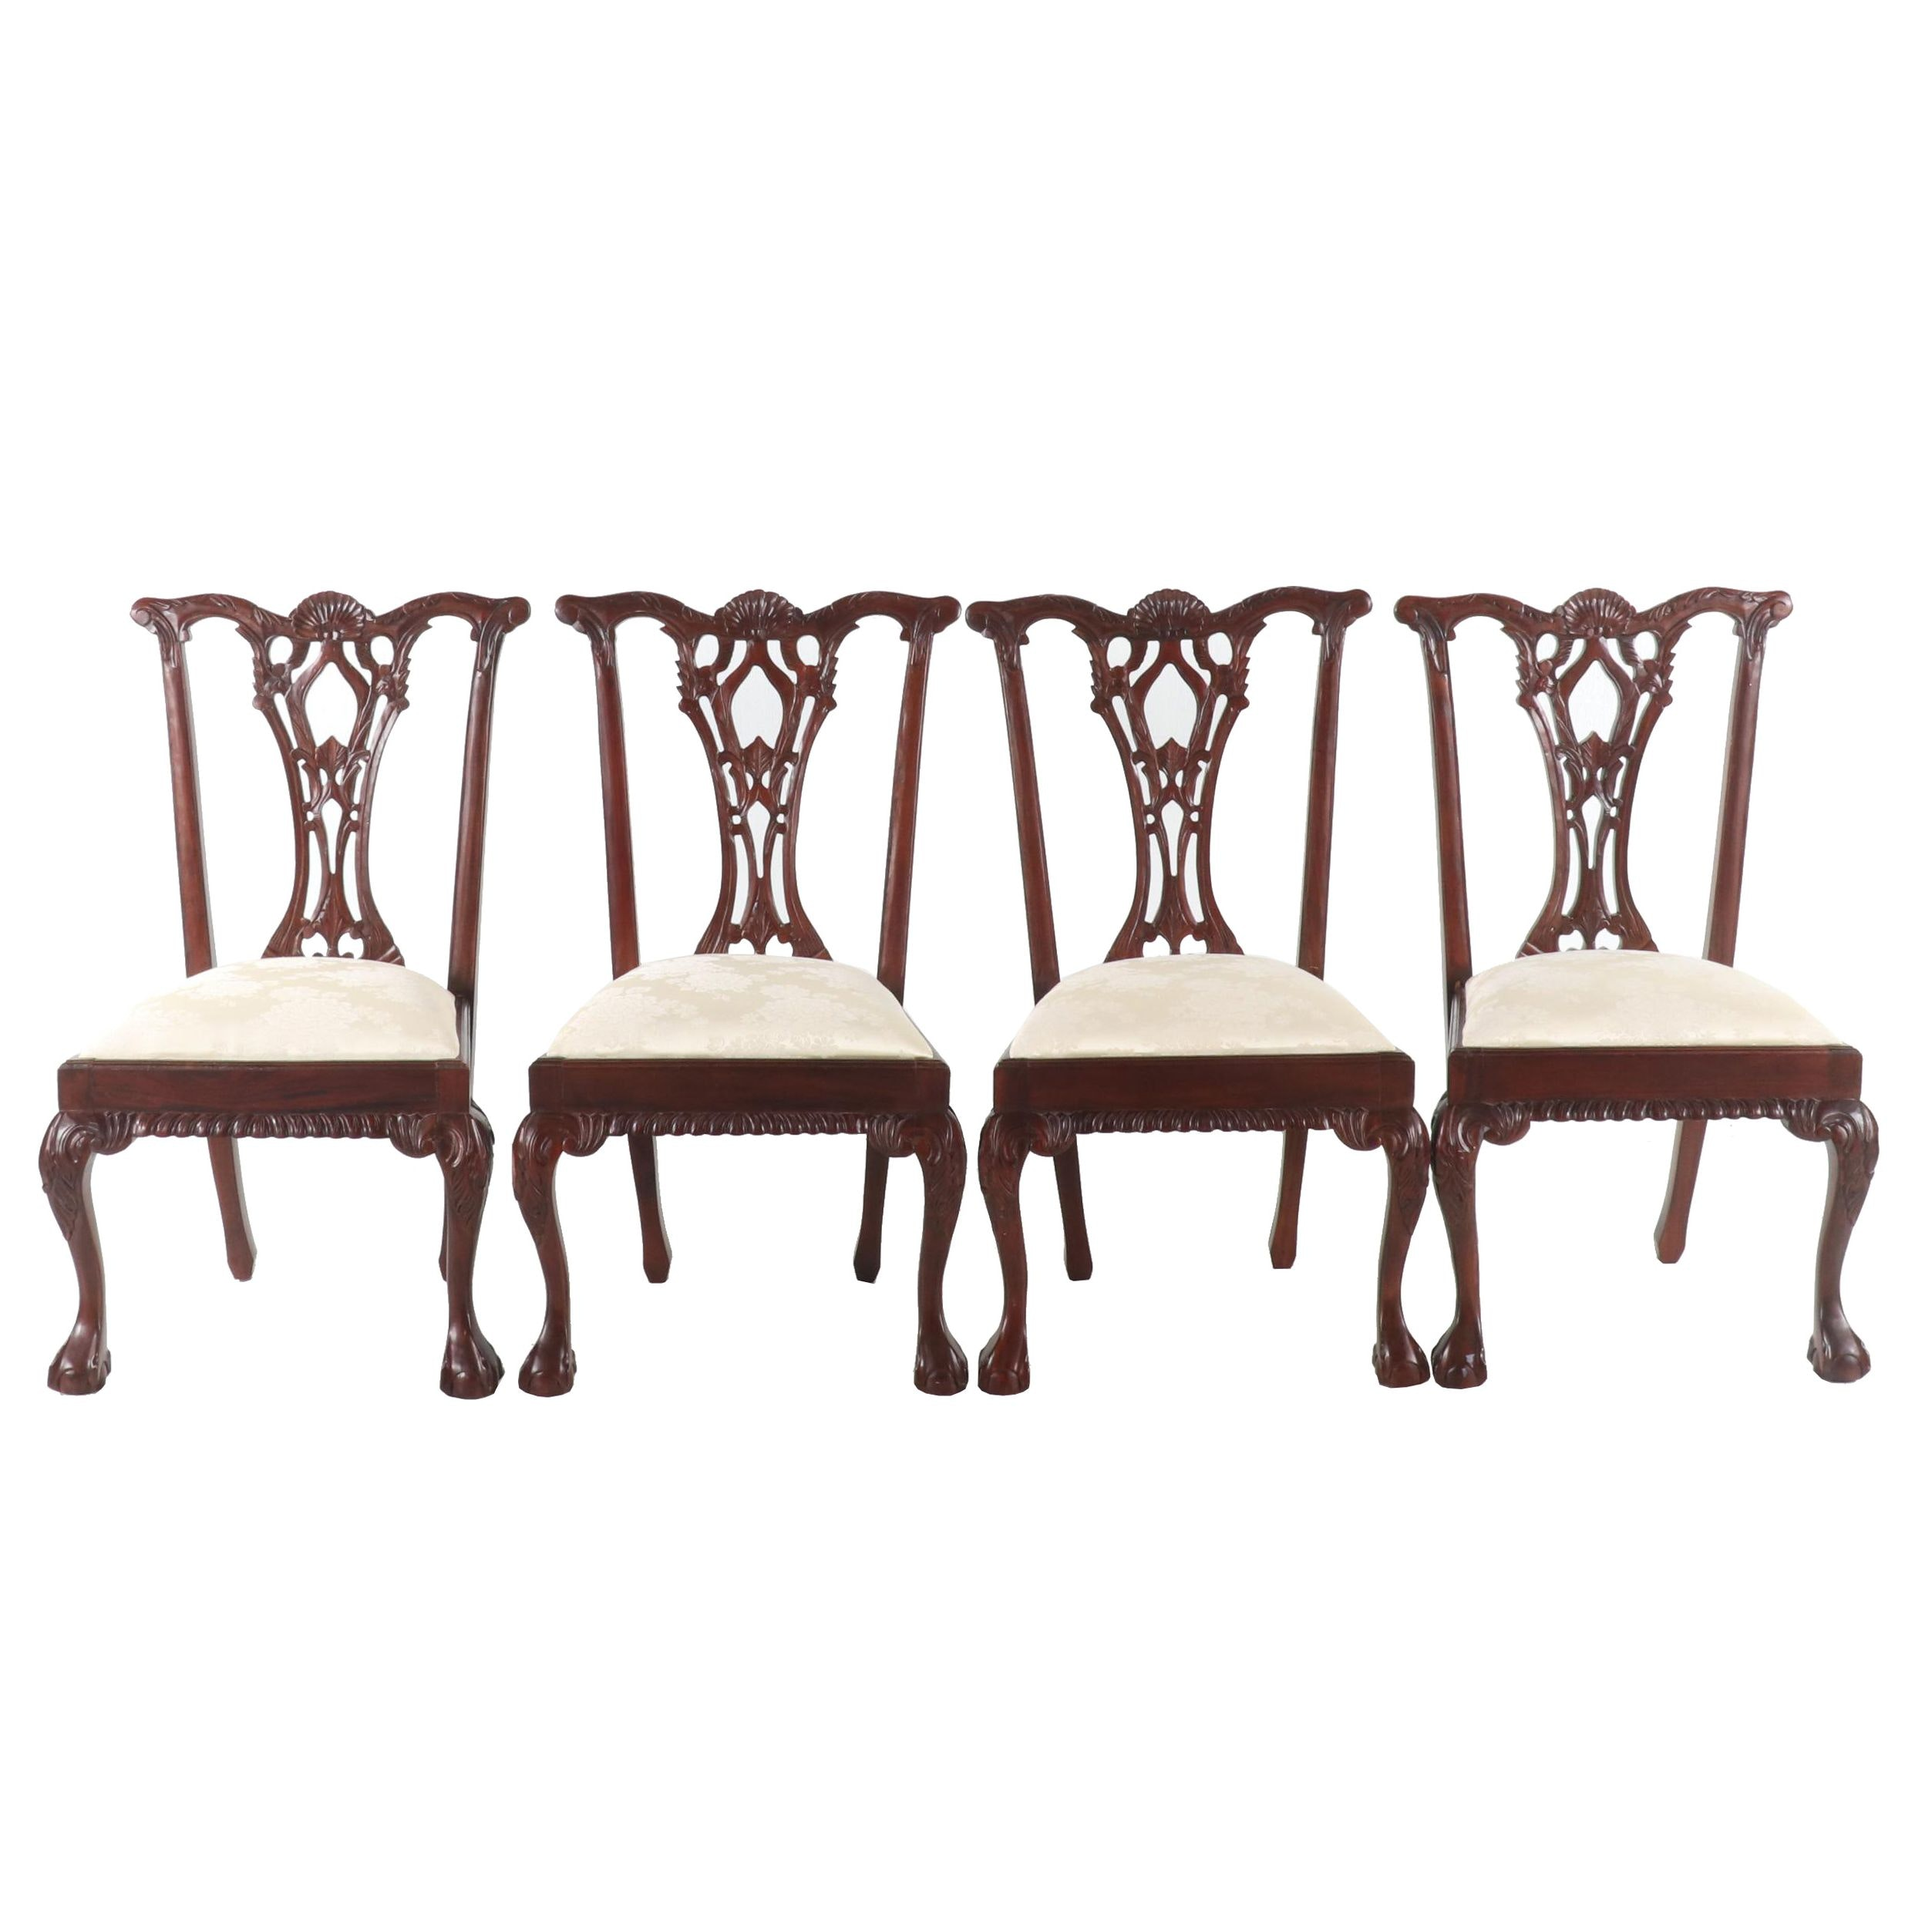 Contemporary Chippendale Style Mahogany Finish Upholstered Dining Chairs